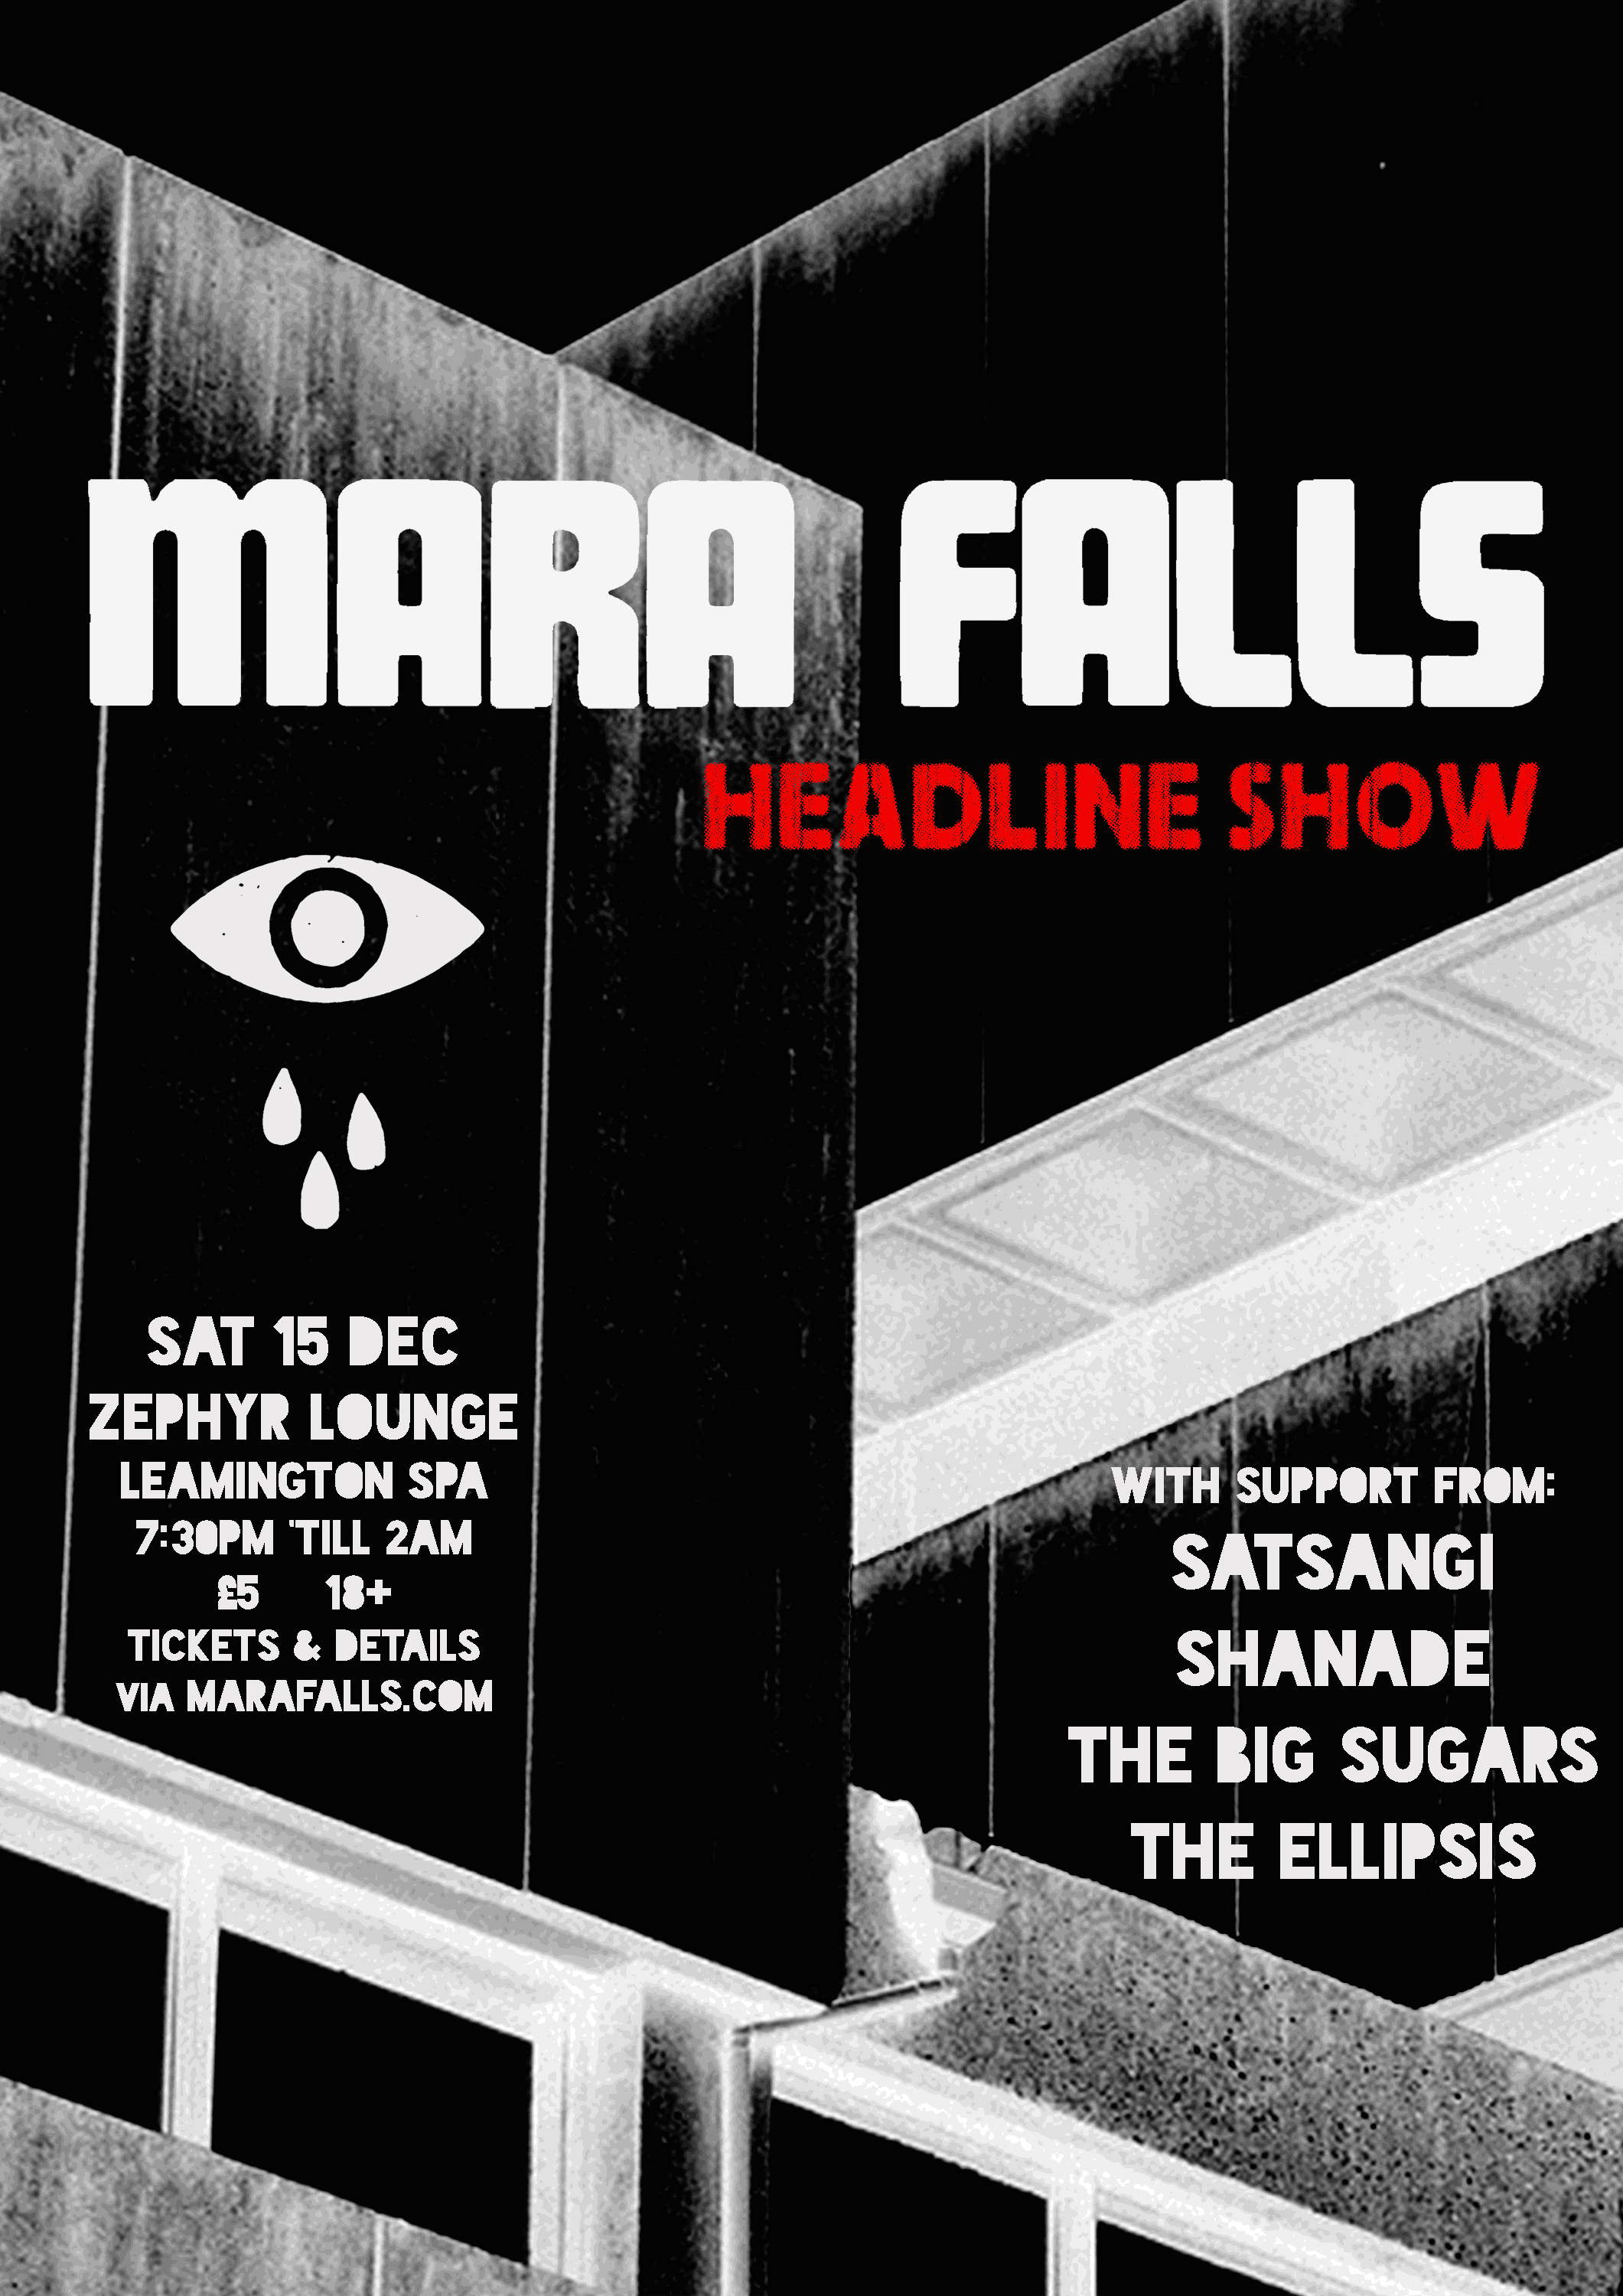 Mara Falls headline show @ Zephyr Lounge, Leamington Spa - 15th December 2018